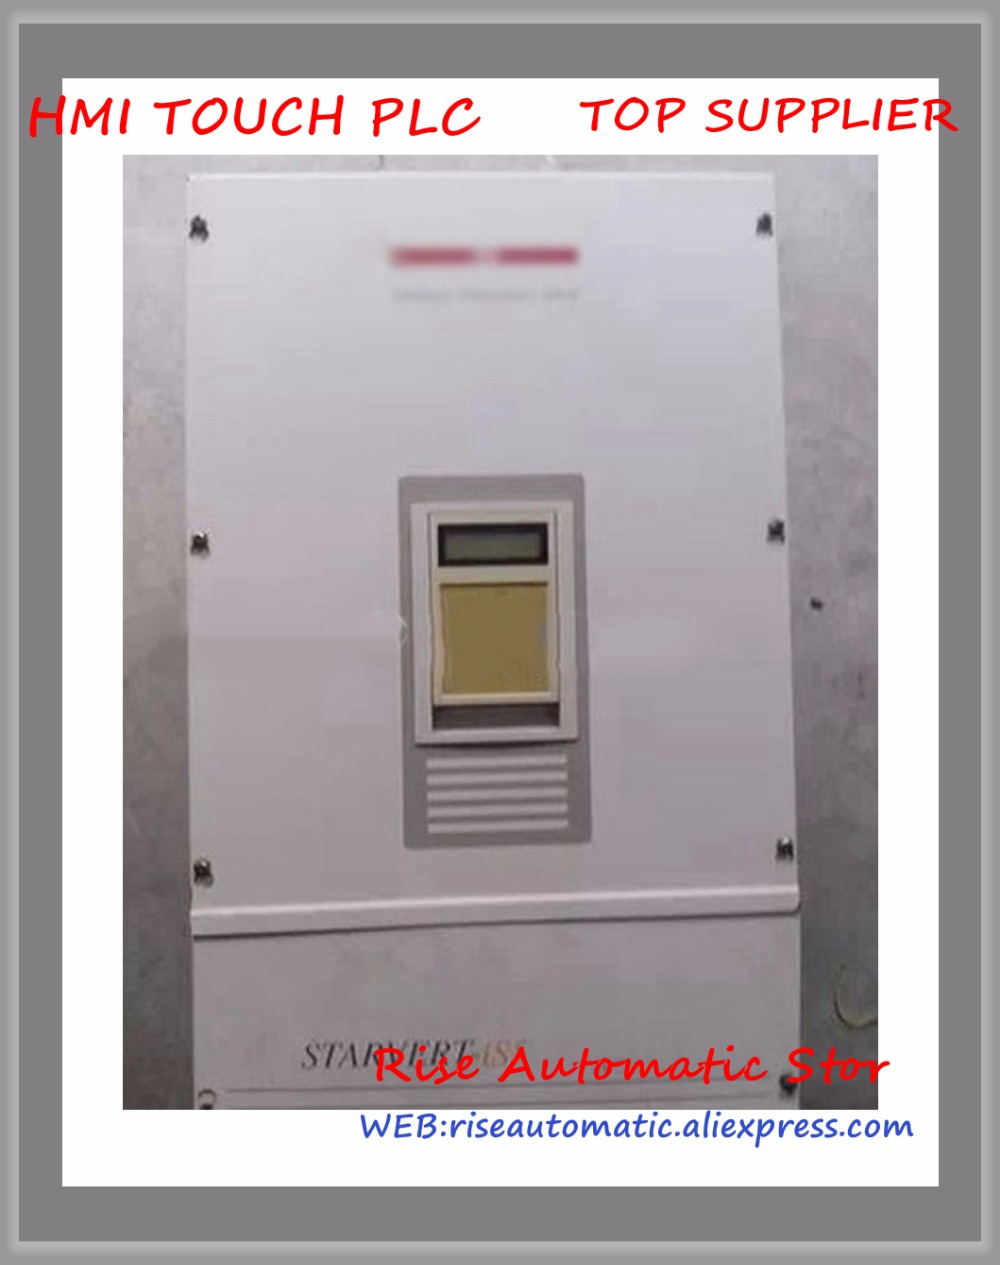 0.75KW 3 phase 200V Inverter VFD frequency AC drive SV008iS5-2N new0.75KW 3 phase 200V Inverter VFD frequency AC drive SV008iS5-2N new